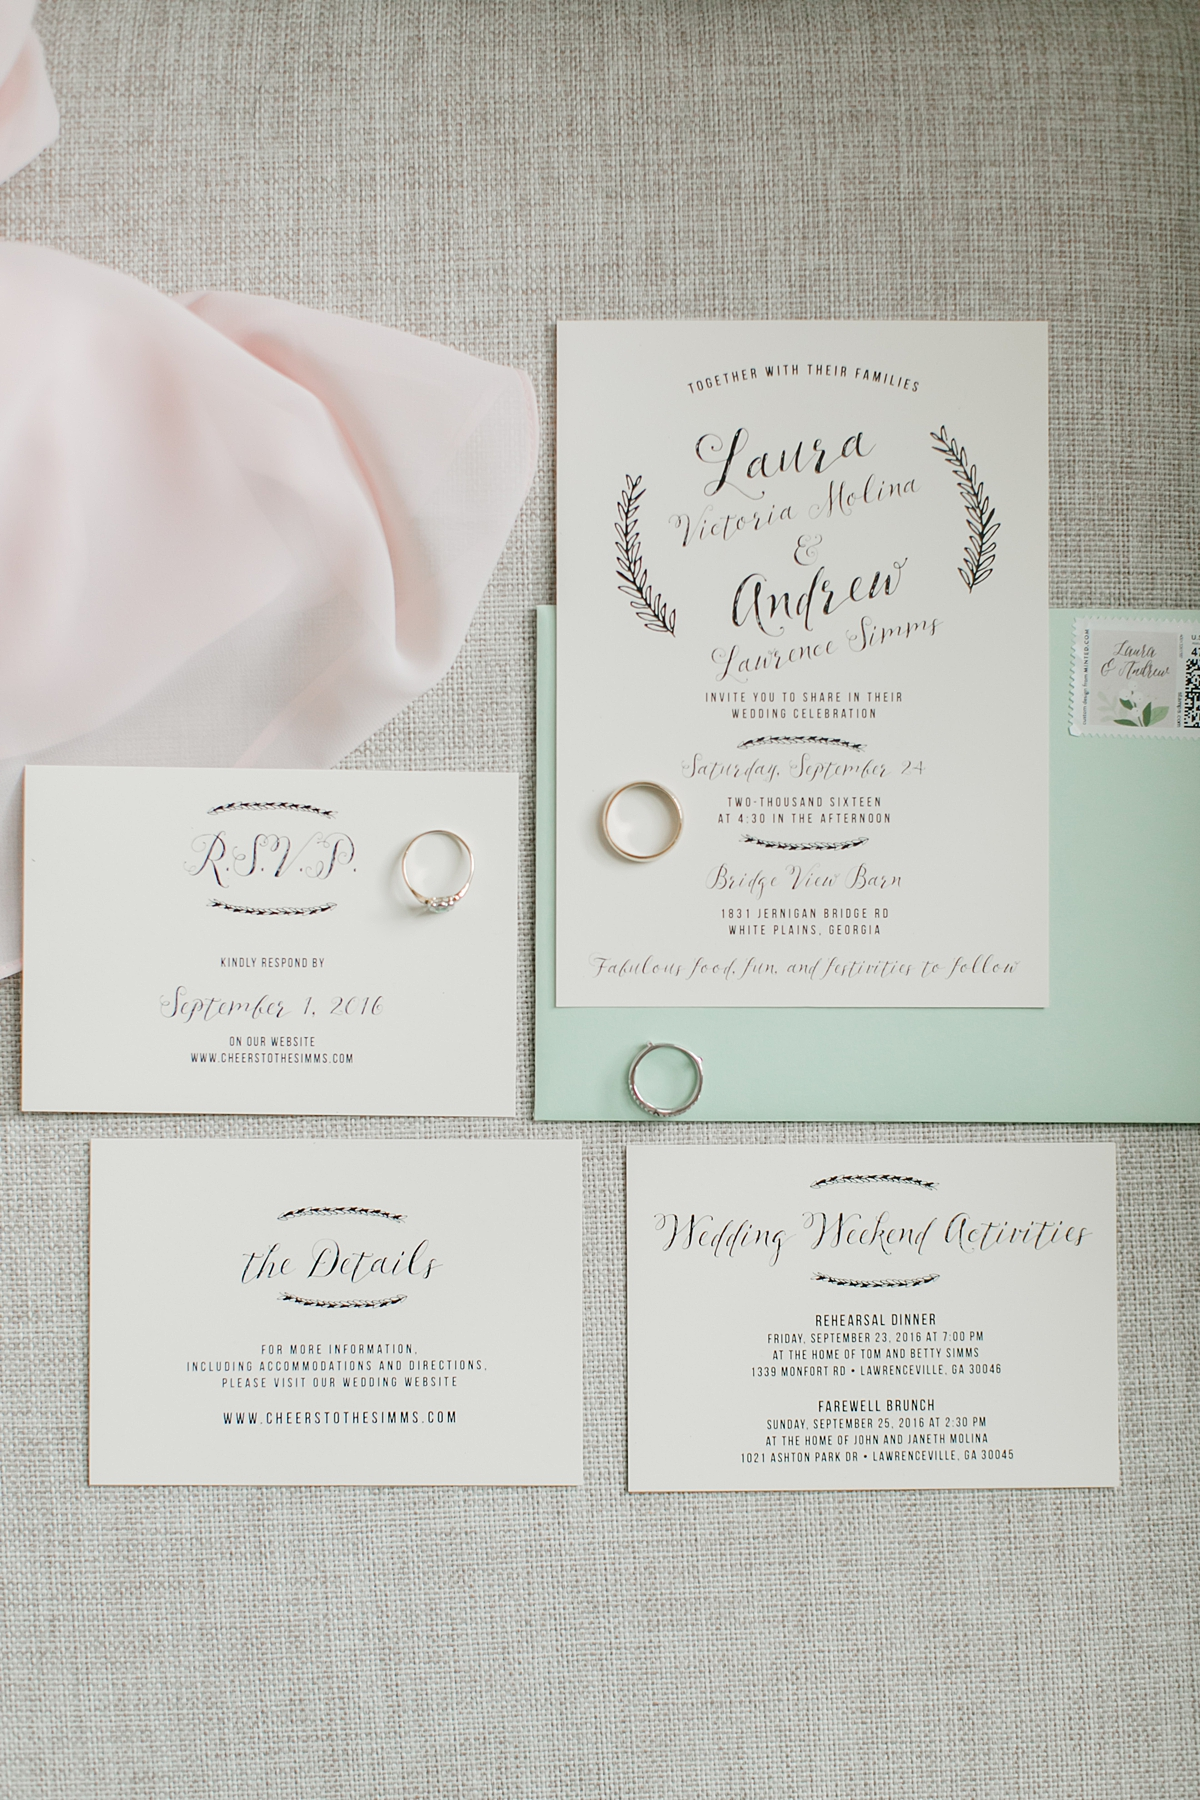 Diy Wedding Invitations With Photo 18 Free Script Fonts For Your Diy Wedding Invitations A